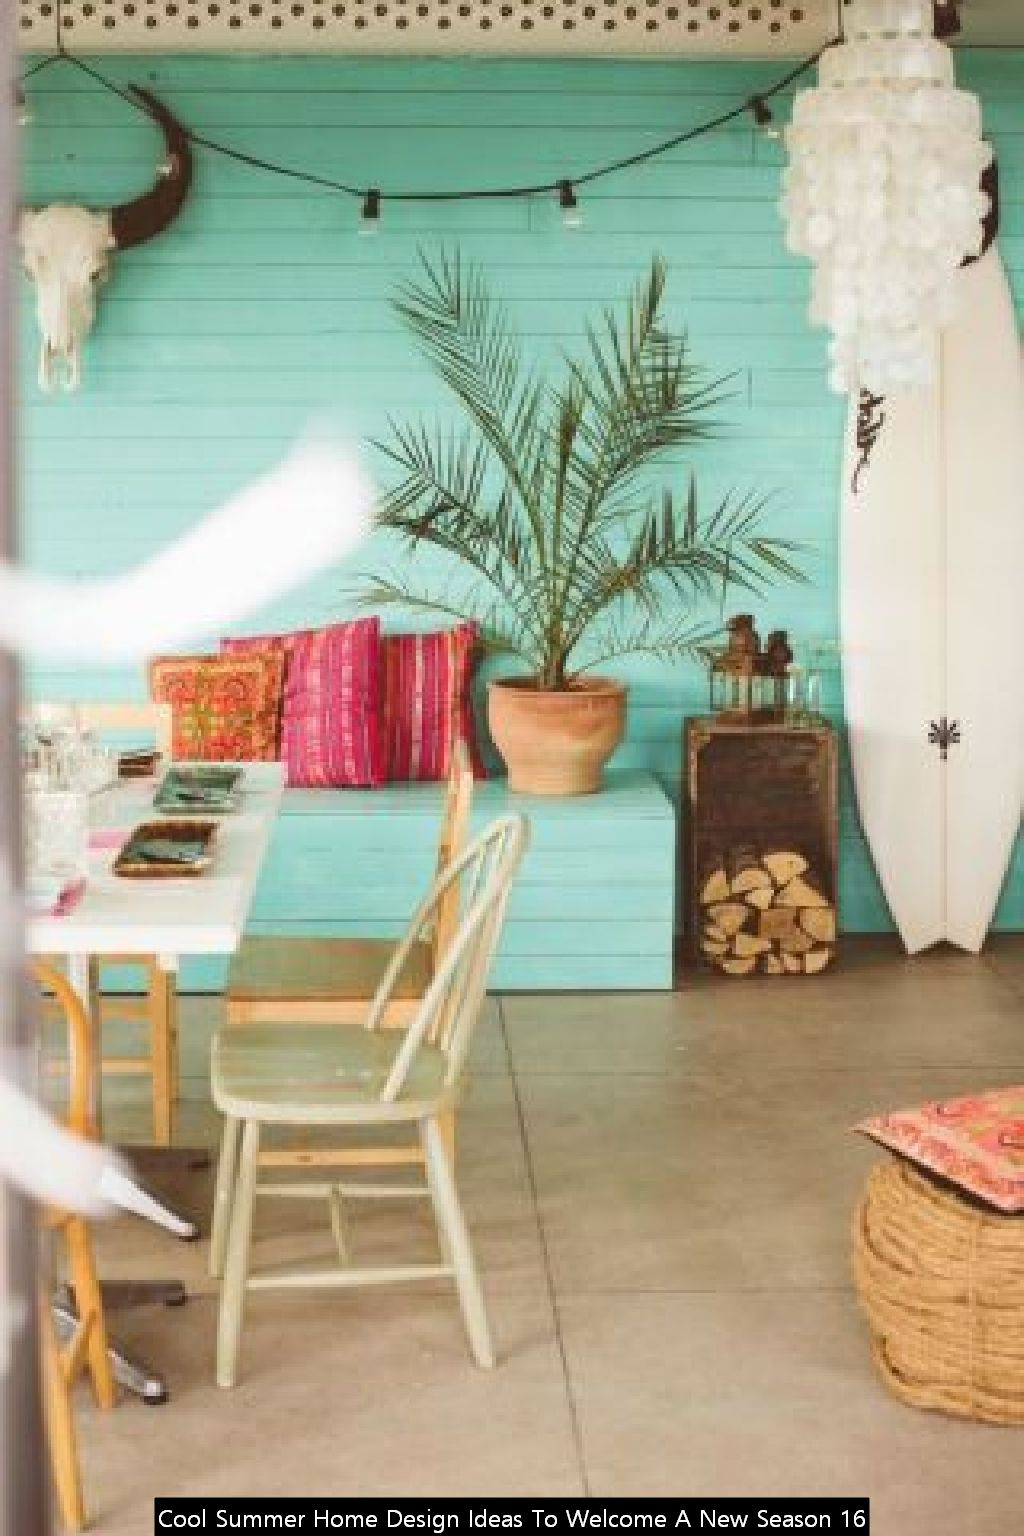 Cool Summer Home Design Ideas To Welcome A New Season 16